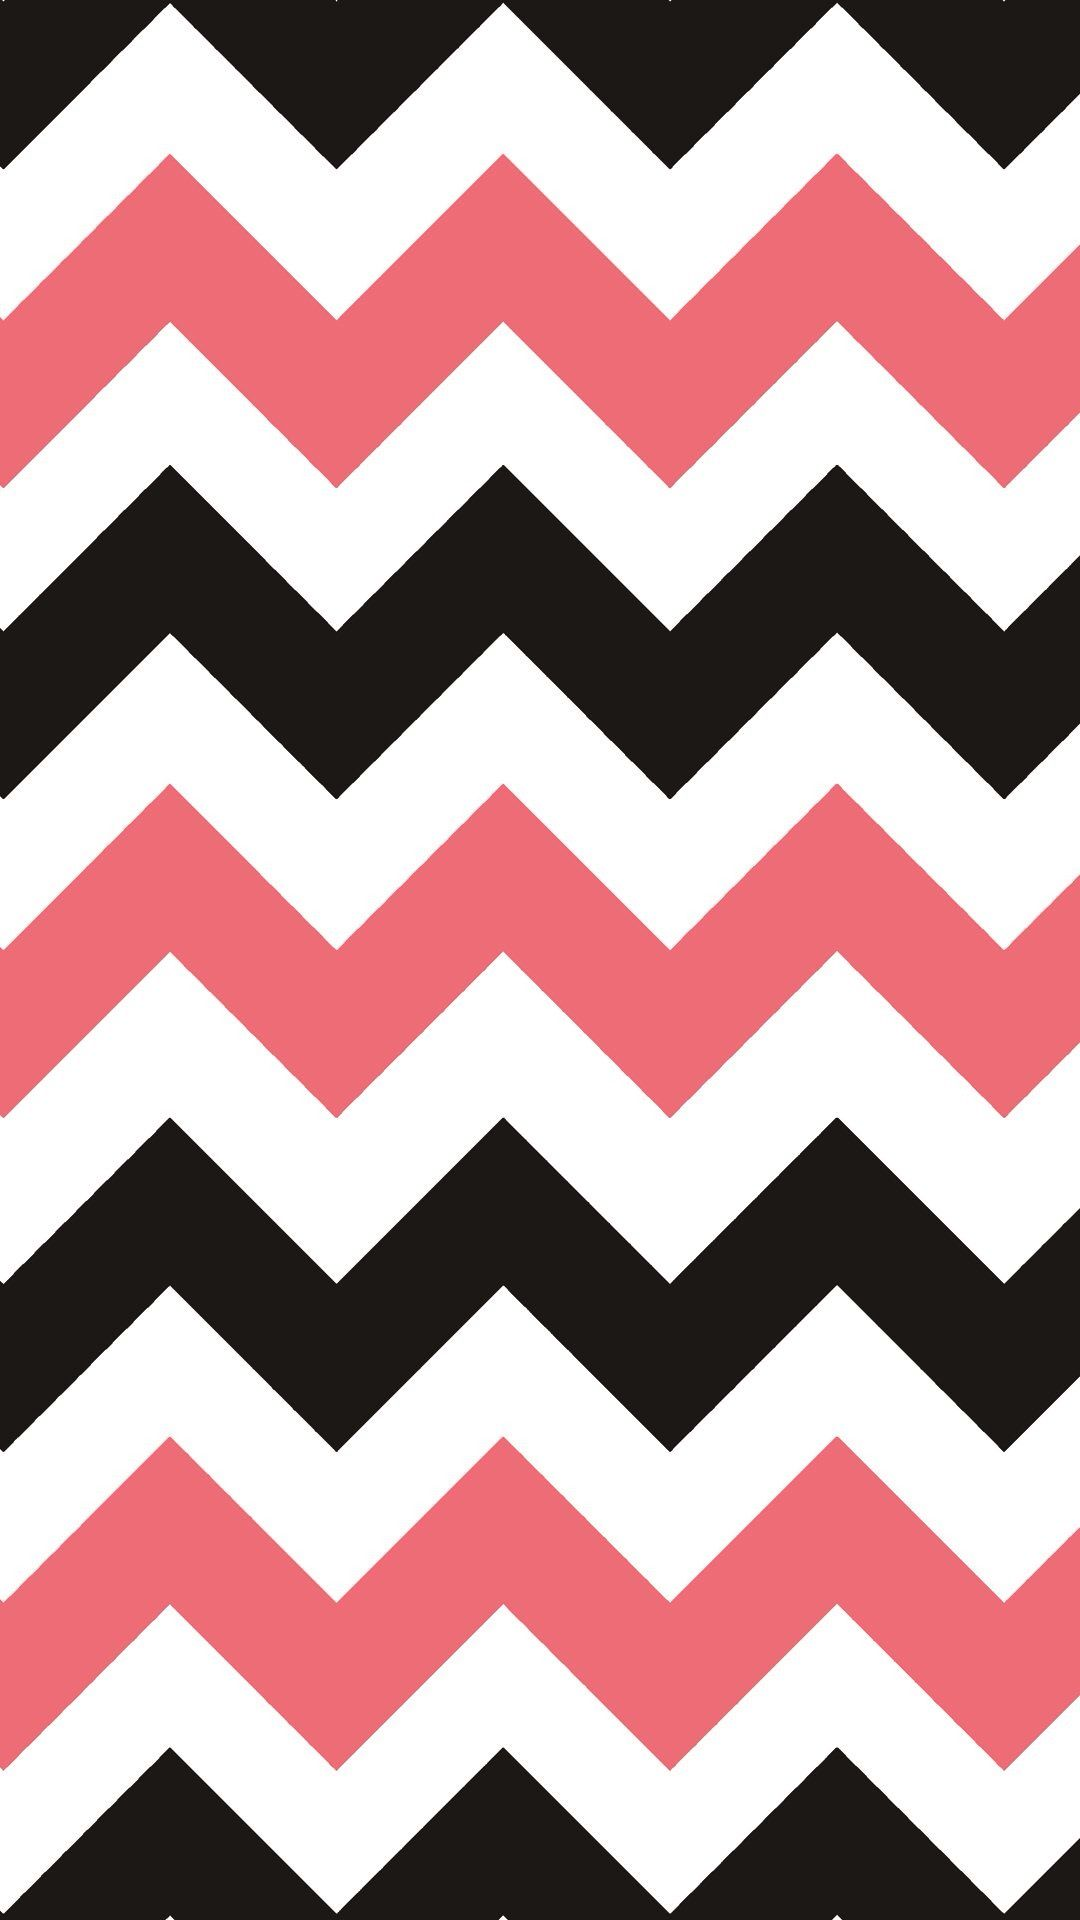 Cell Phone Wallpapers, Zig Zag, Chevron, Android, Skull, Stripes, Backgrounds,